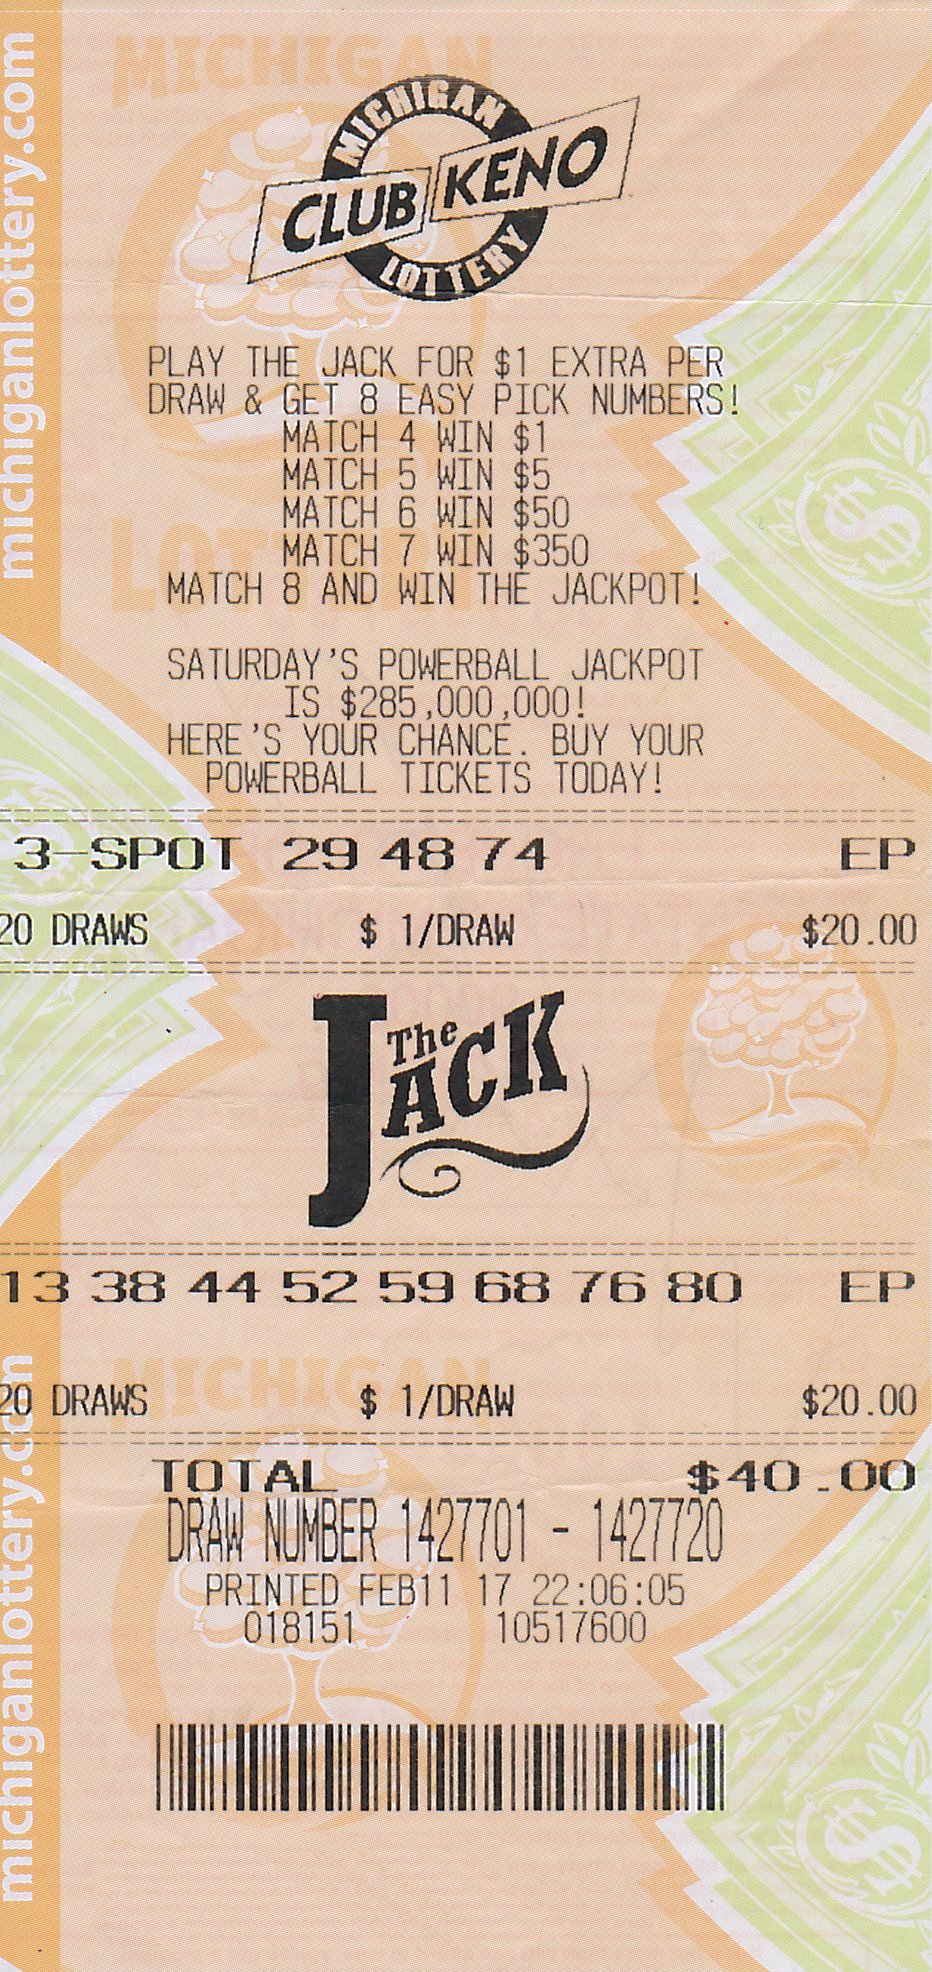 Wayne County Man Wins Second Club Keno The Jack Prize from Michigan